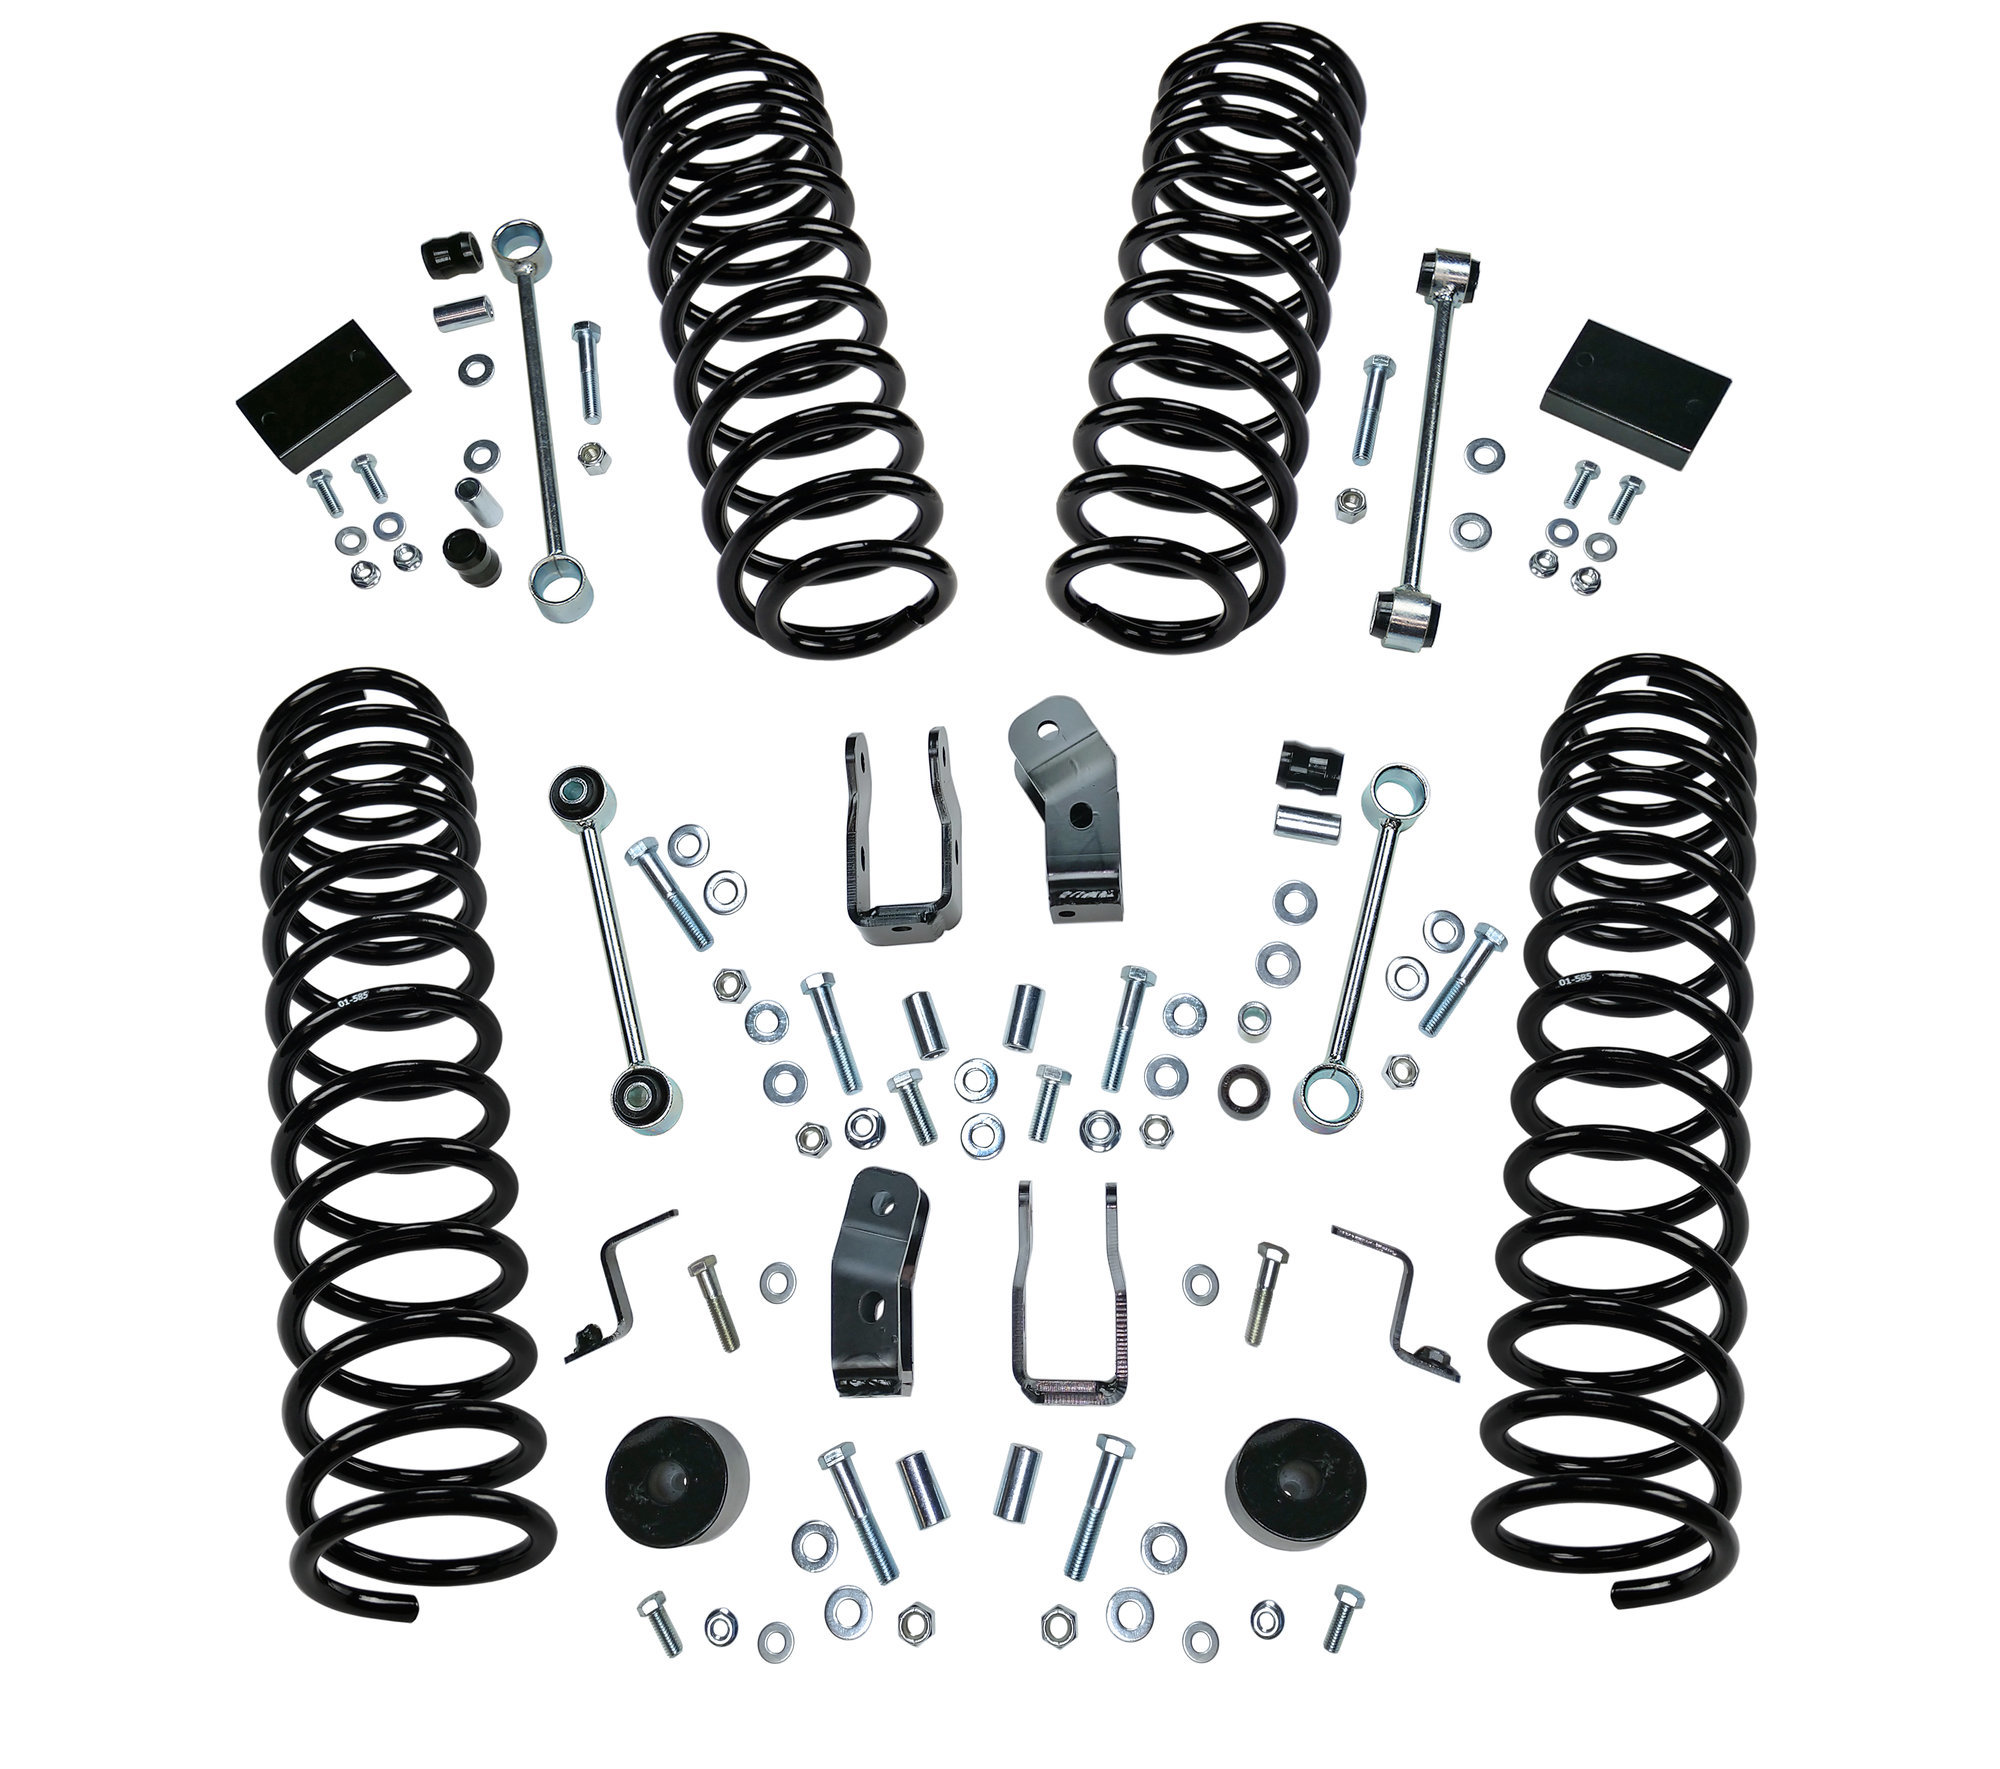 Superlift 2 5 Dual Rate Coil Spring Lift Kit For 18 20